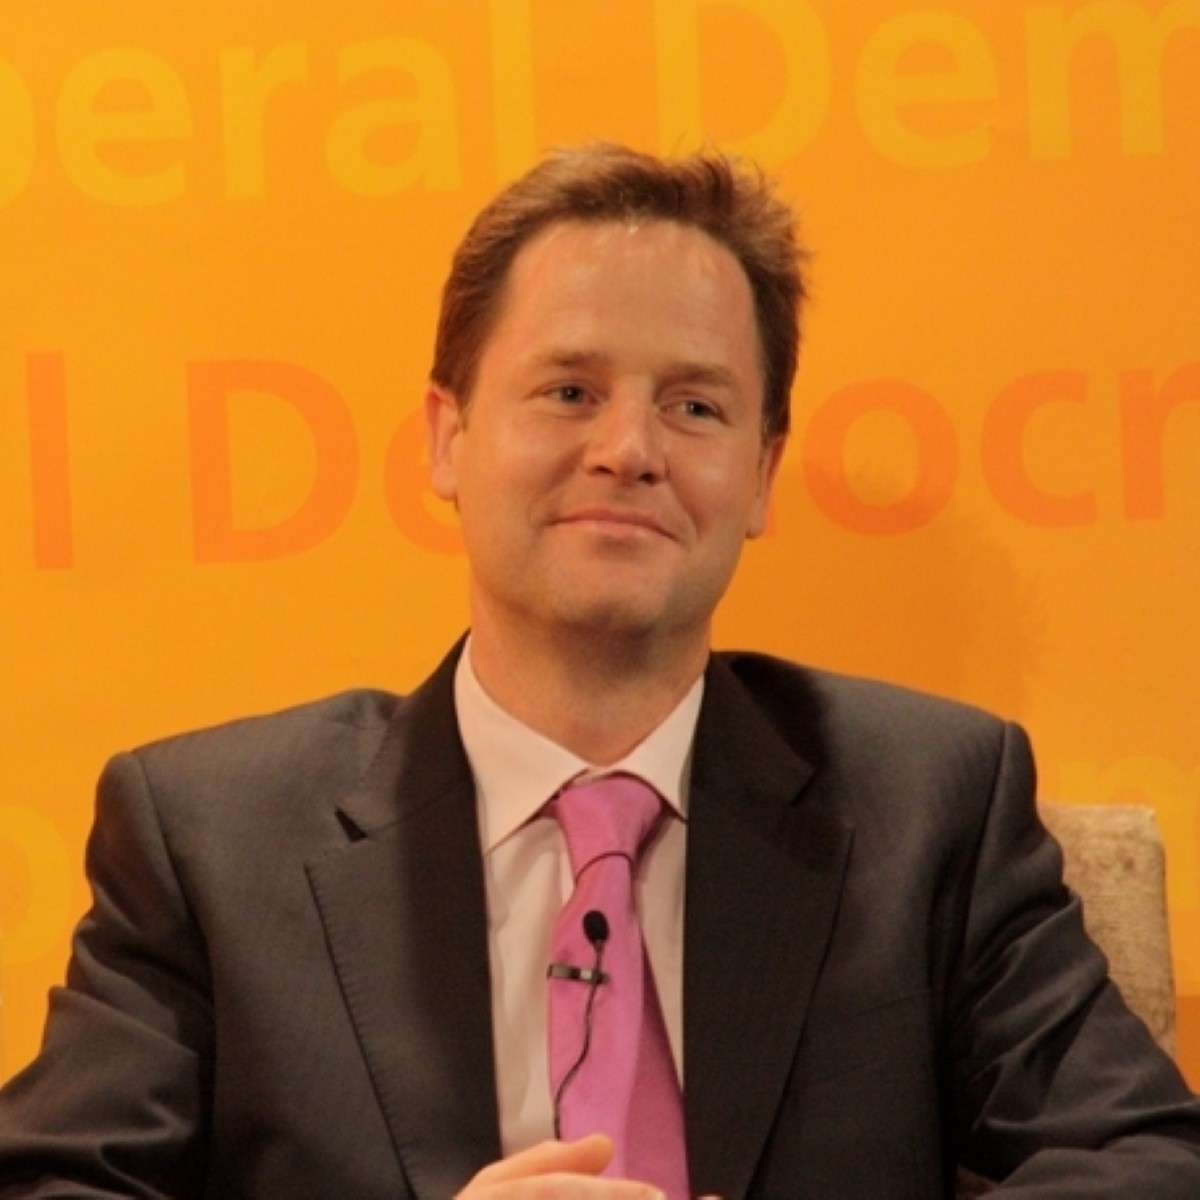 Nick Clegg gave a speech in Luton today outlining his vision for an `open, confident Britain`.